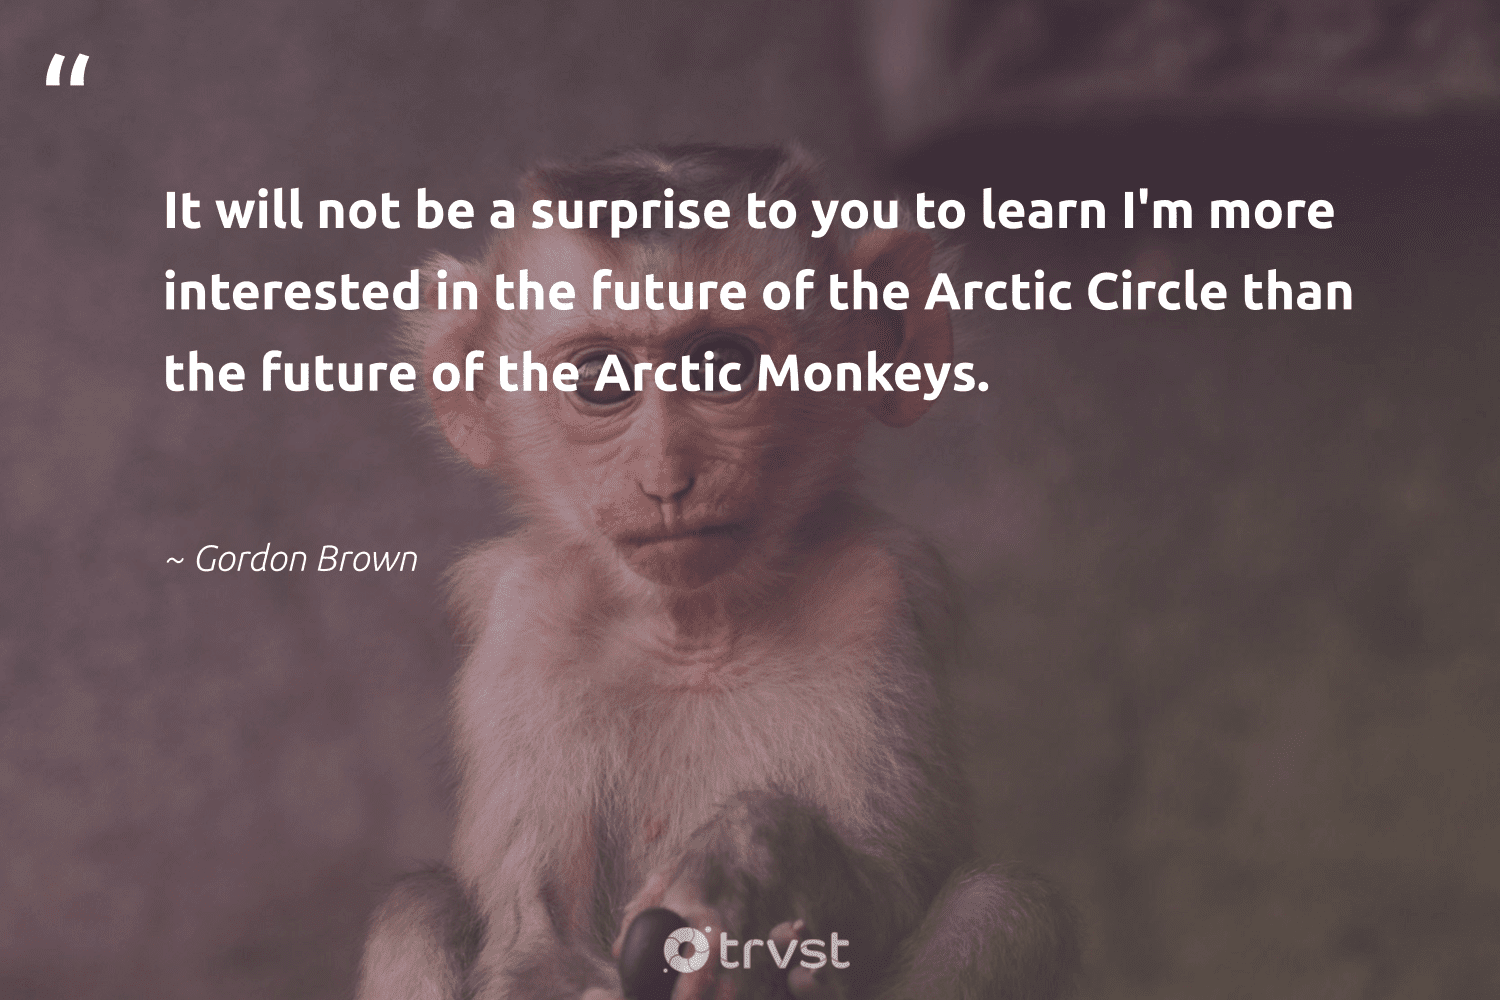 """""""It will not be a surprise to you to learn I'm more interested in the future of the Arctic Circle than the future of the Arctic Monkeys.""""  - Gordon Brown #trvst #quotes #arctic #monkeys #majesticwildlife #bethechange #monkey #planetearthfirst #wildlifeprotection #thinkgreen #biodiversity #dogood"""